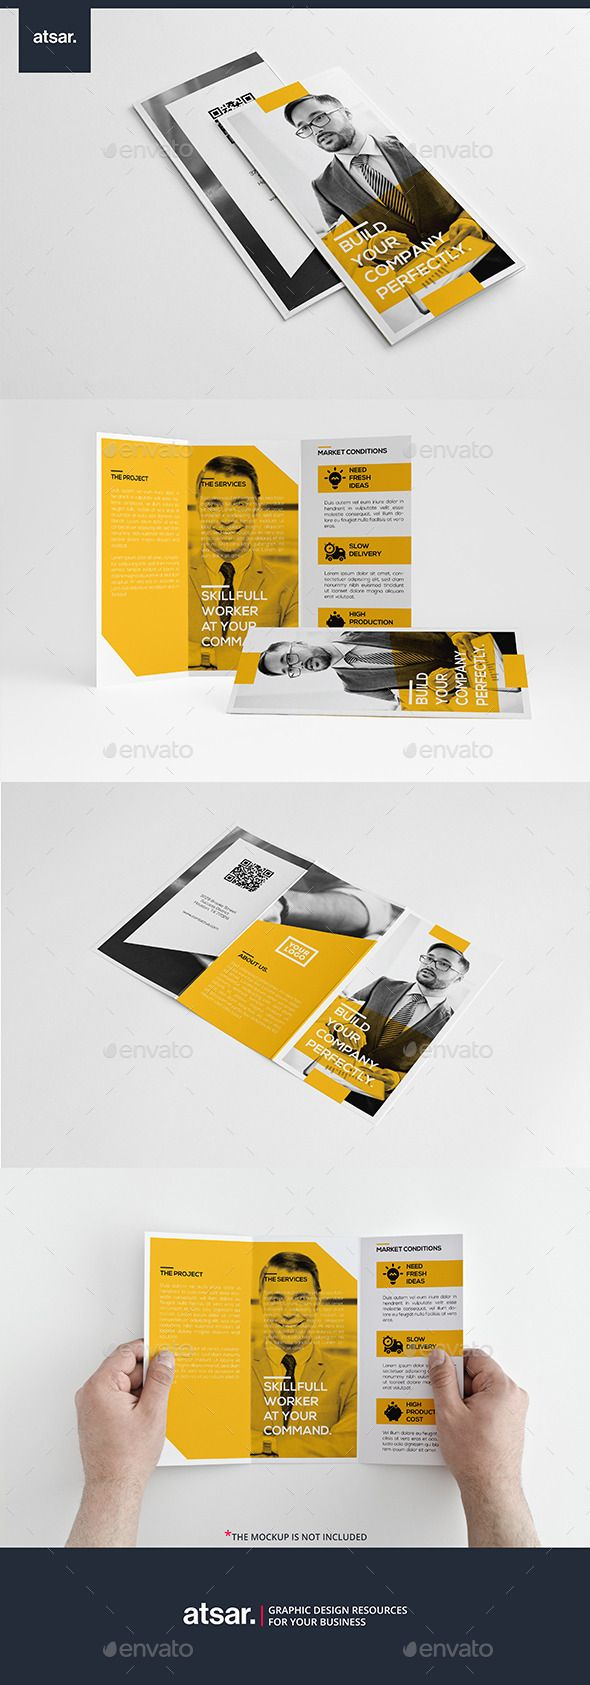 Yellow Simple Trifold | Tríptico, Diseño corporativo y Tarjetas de ...